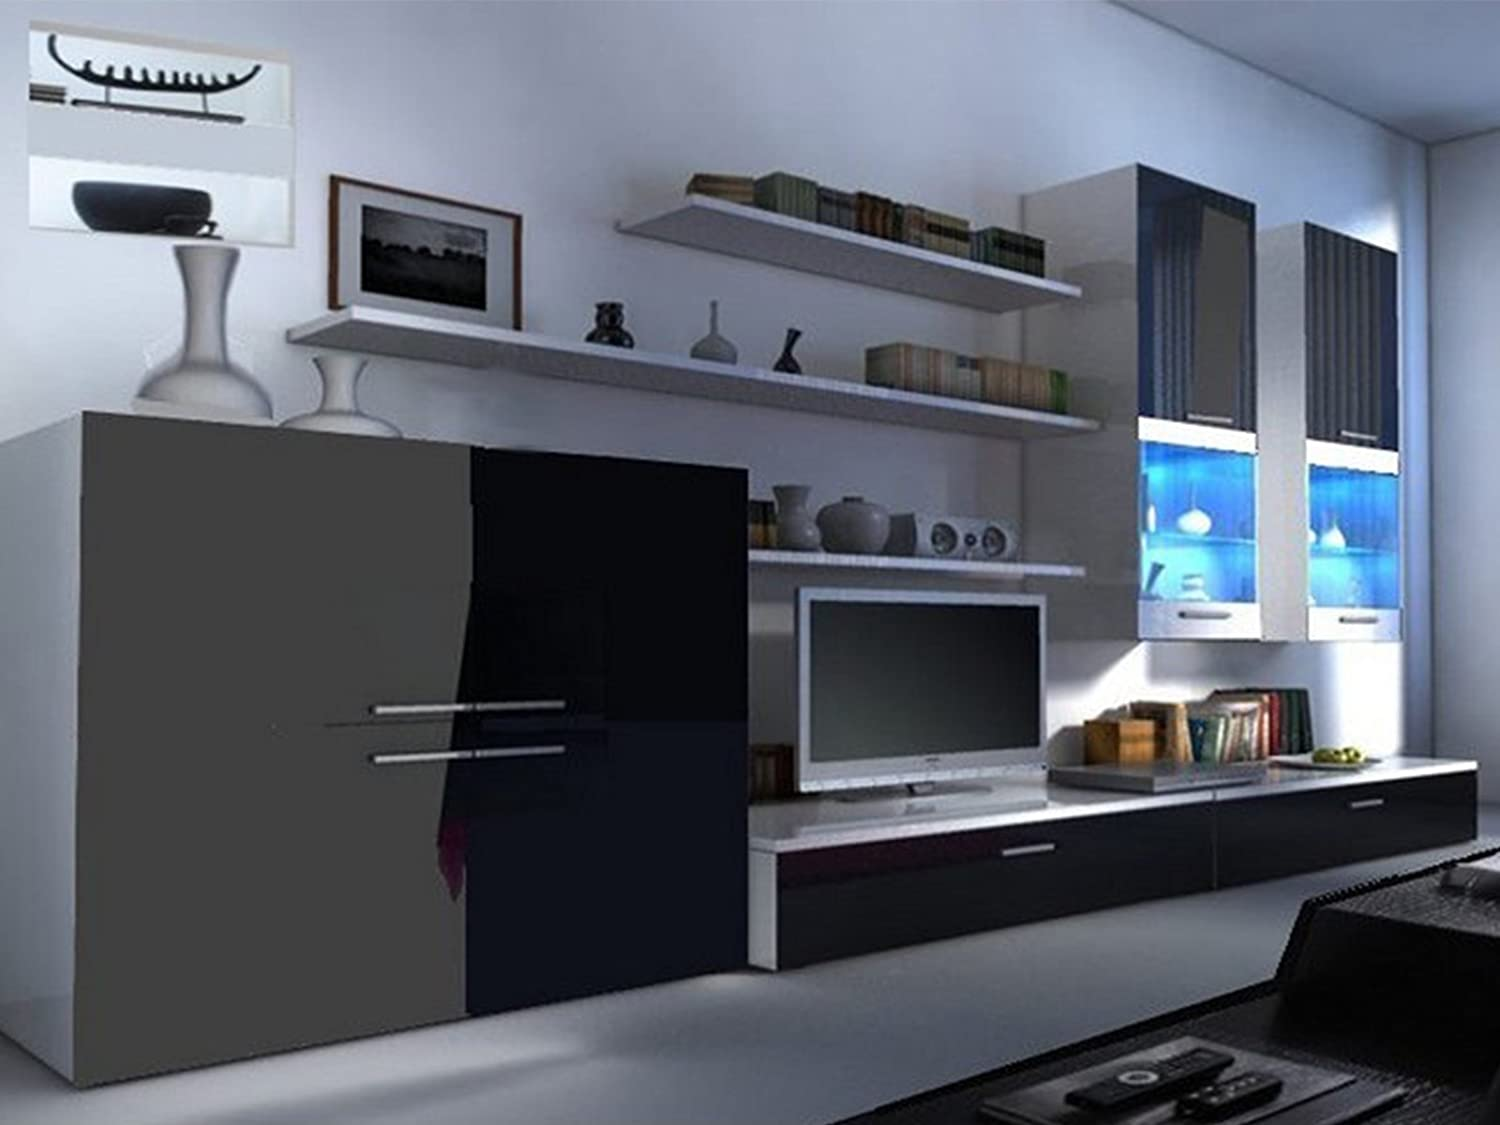 wall cabinets living room furniture. Beta Living Room Set - High Gloss Entertainment Package | Wall Units TV Stand LED Lights Floating Shelves Cabinets (Black \u0026 White): Amazon.co.uk: Furniture U